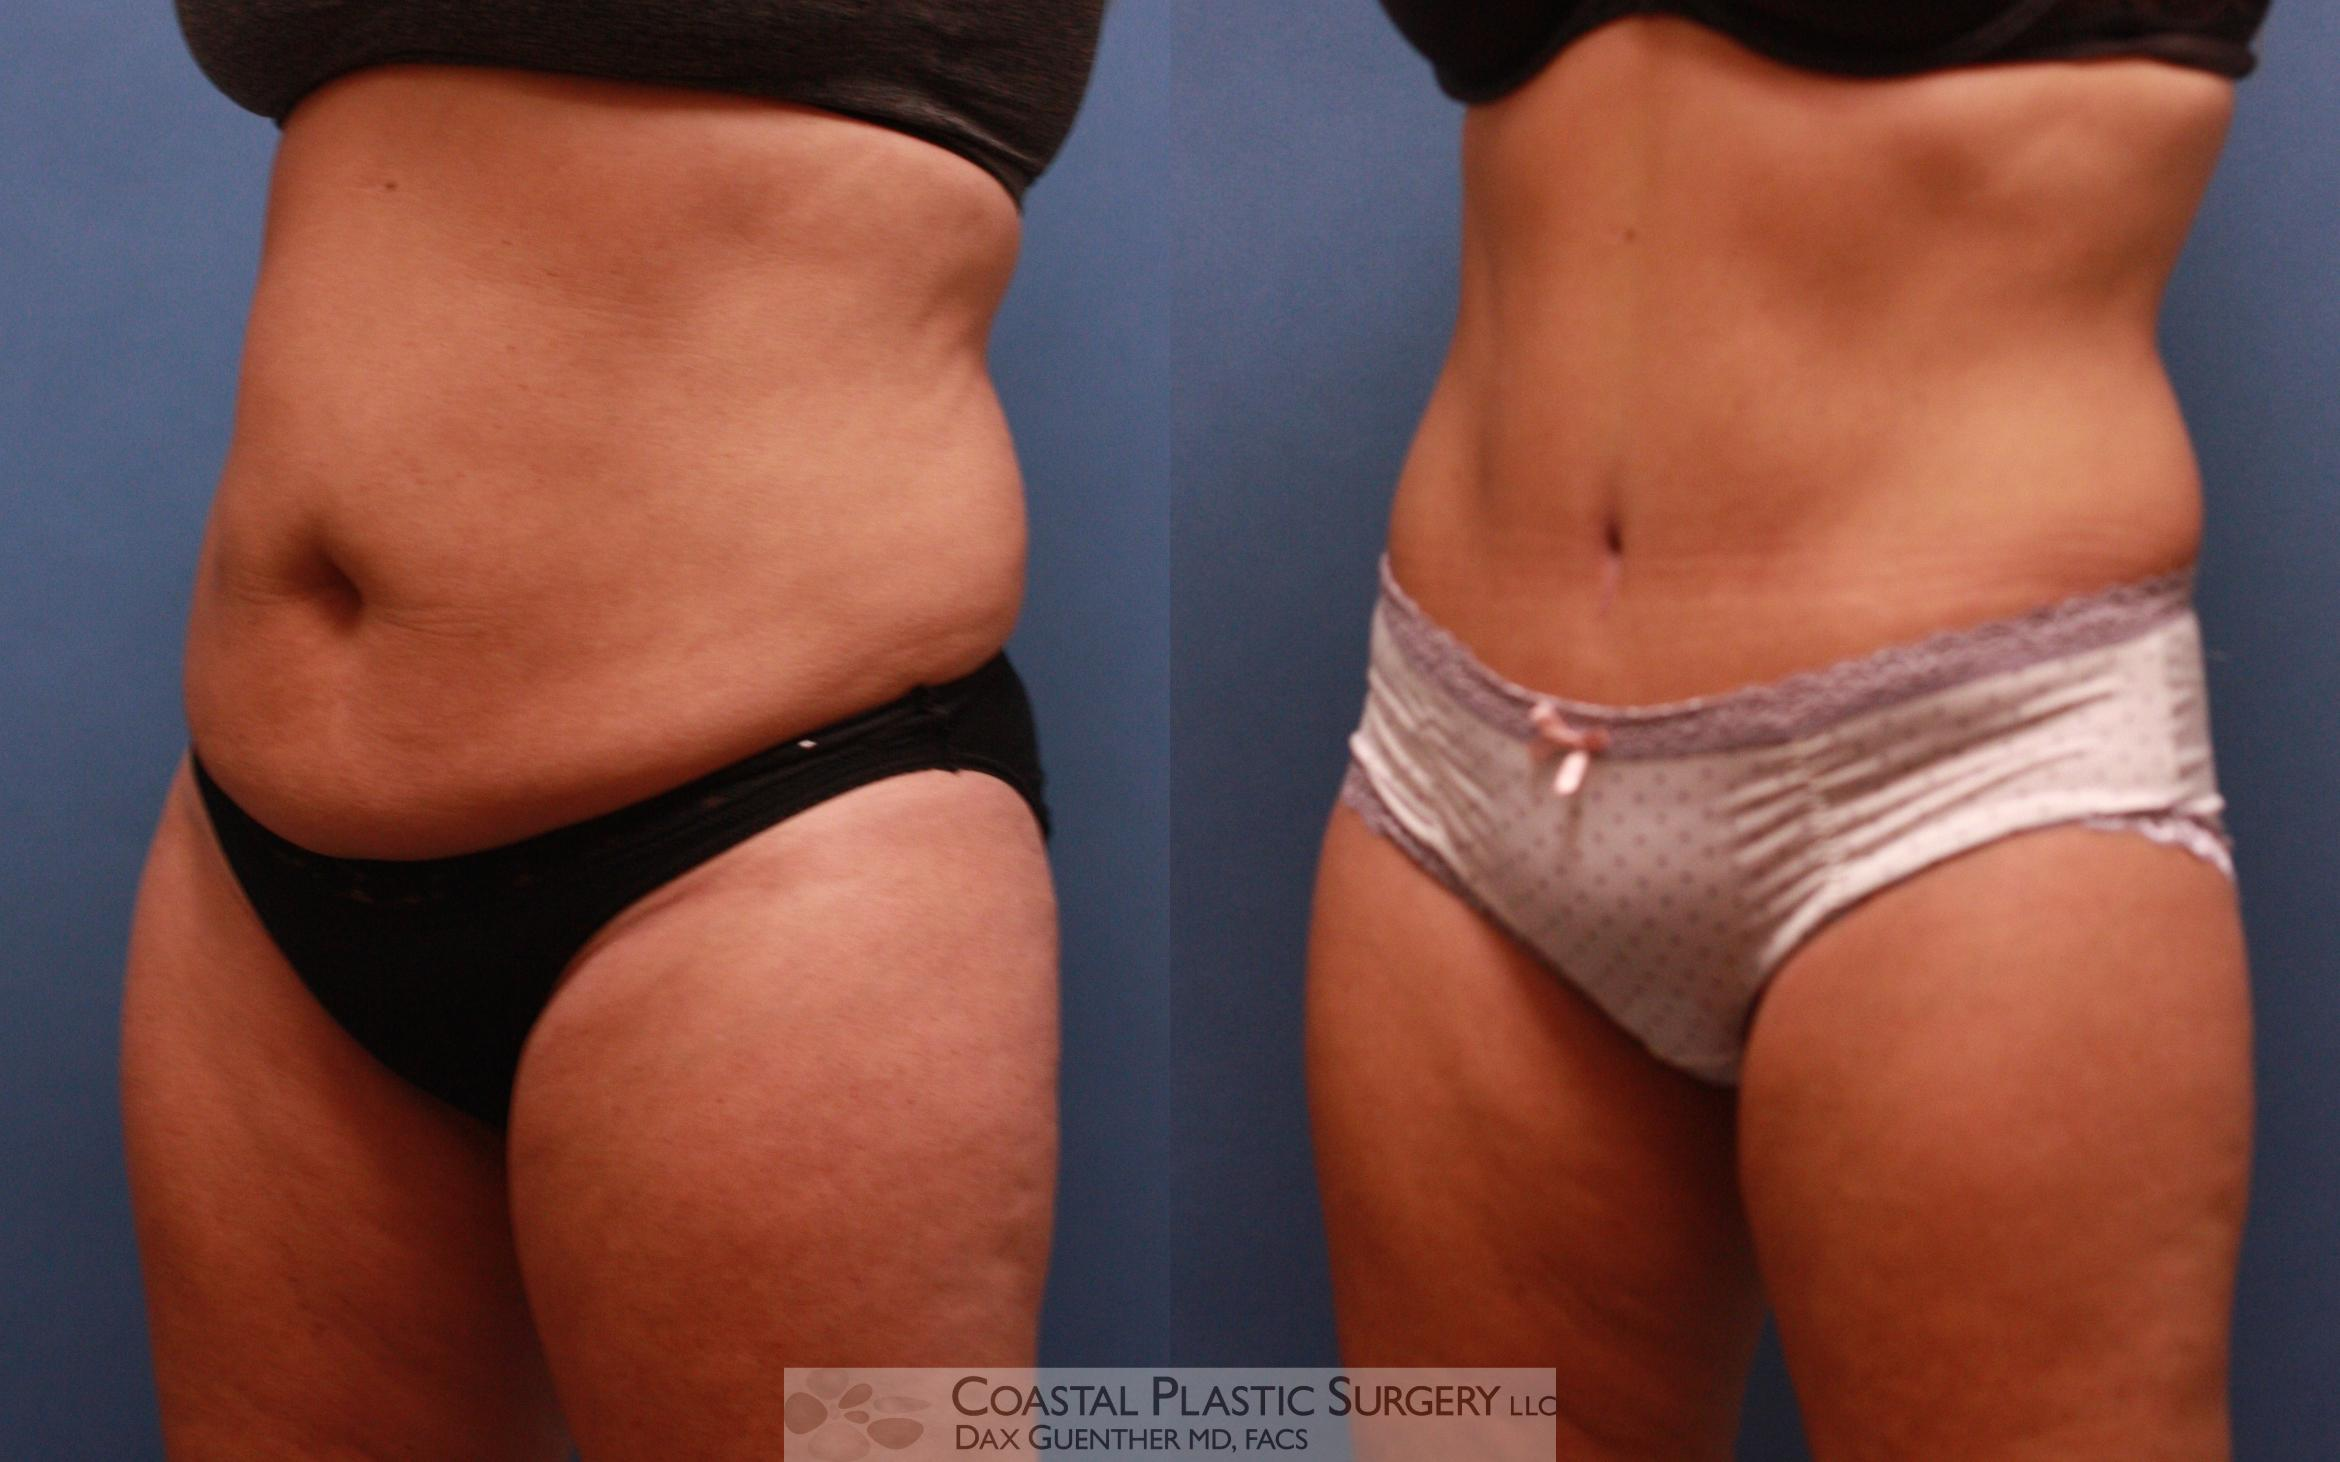 Tummy Tuck (Abdominoplasty) Before & After Photo | Hingham, MA | Dax Guenther, MD: Coastal Plastic Surgery